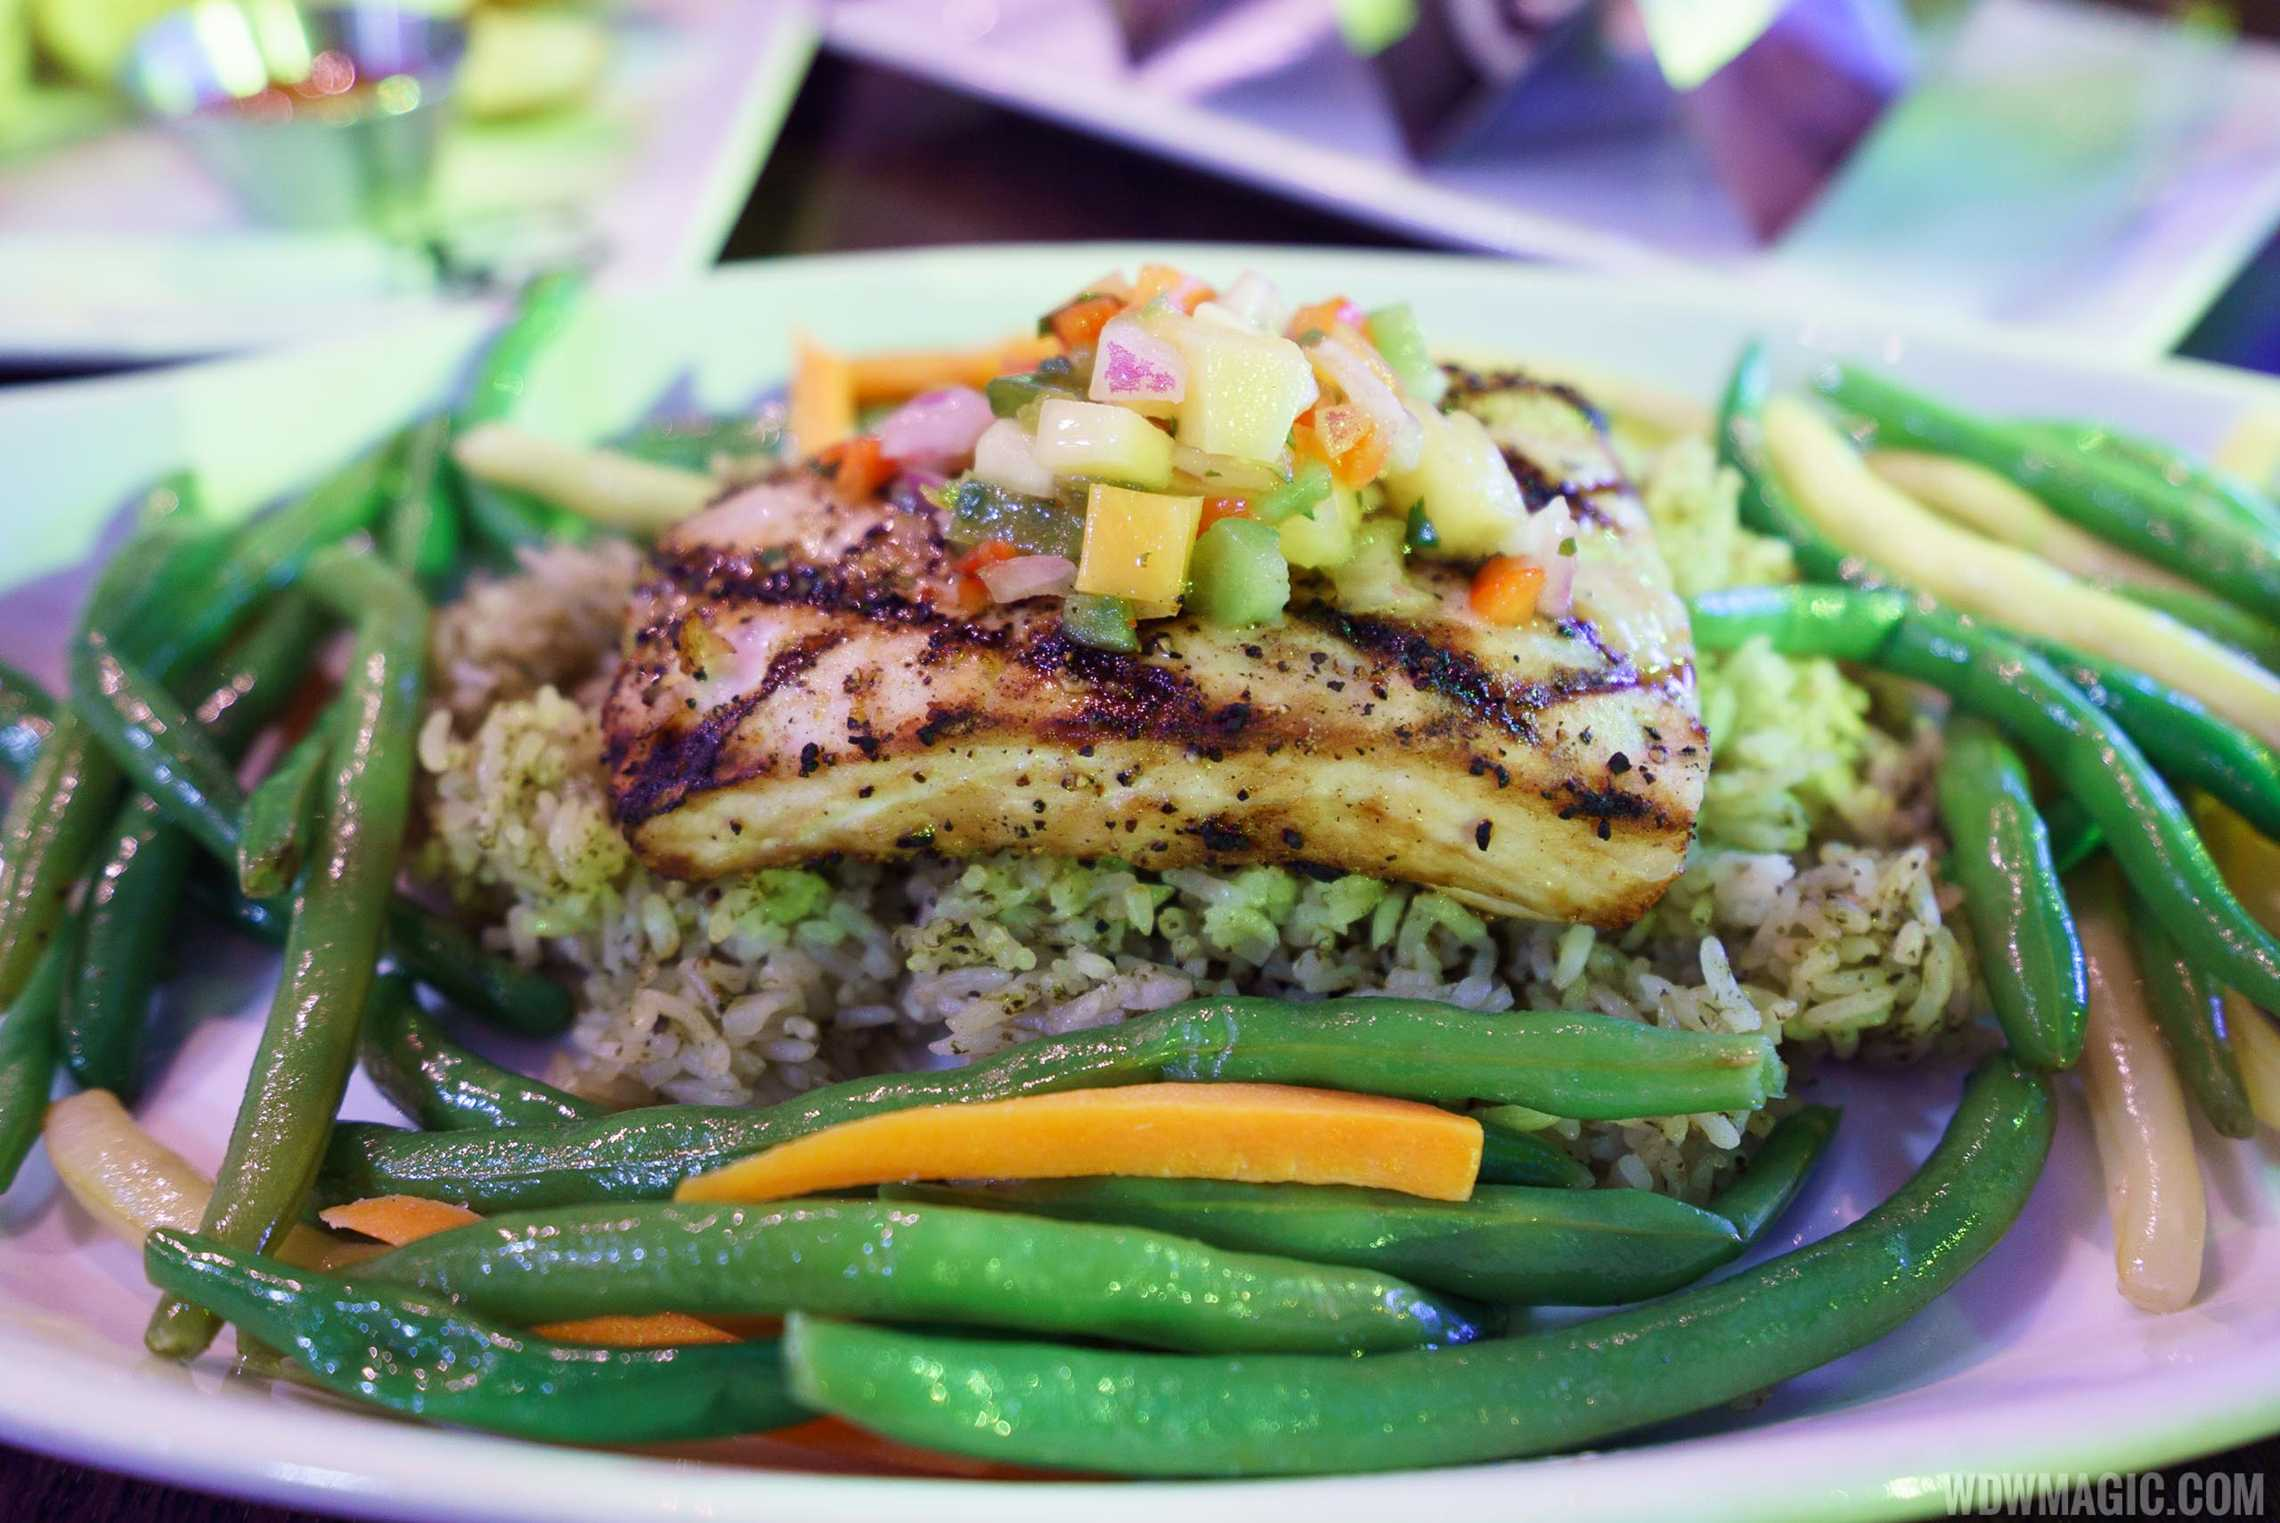 Fresh Florida Mahi Mahi - $29.99 Grilled Mahi Mahi topped with tropical fruit salsa, served with house-made cilantro rice and green bean blend